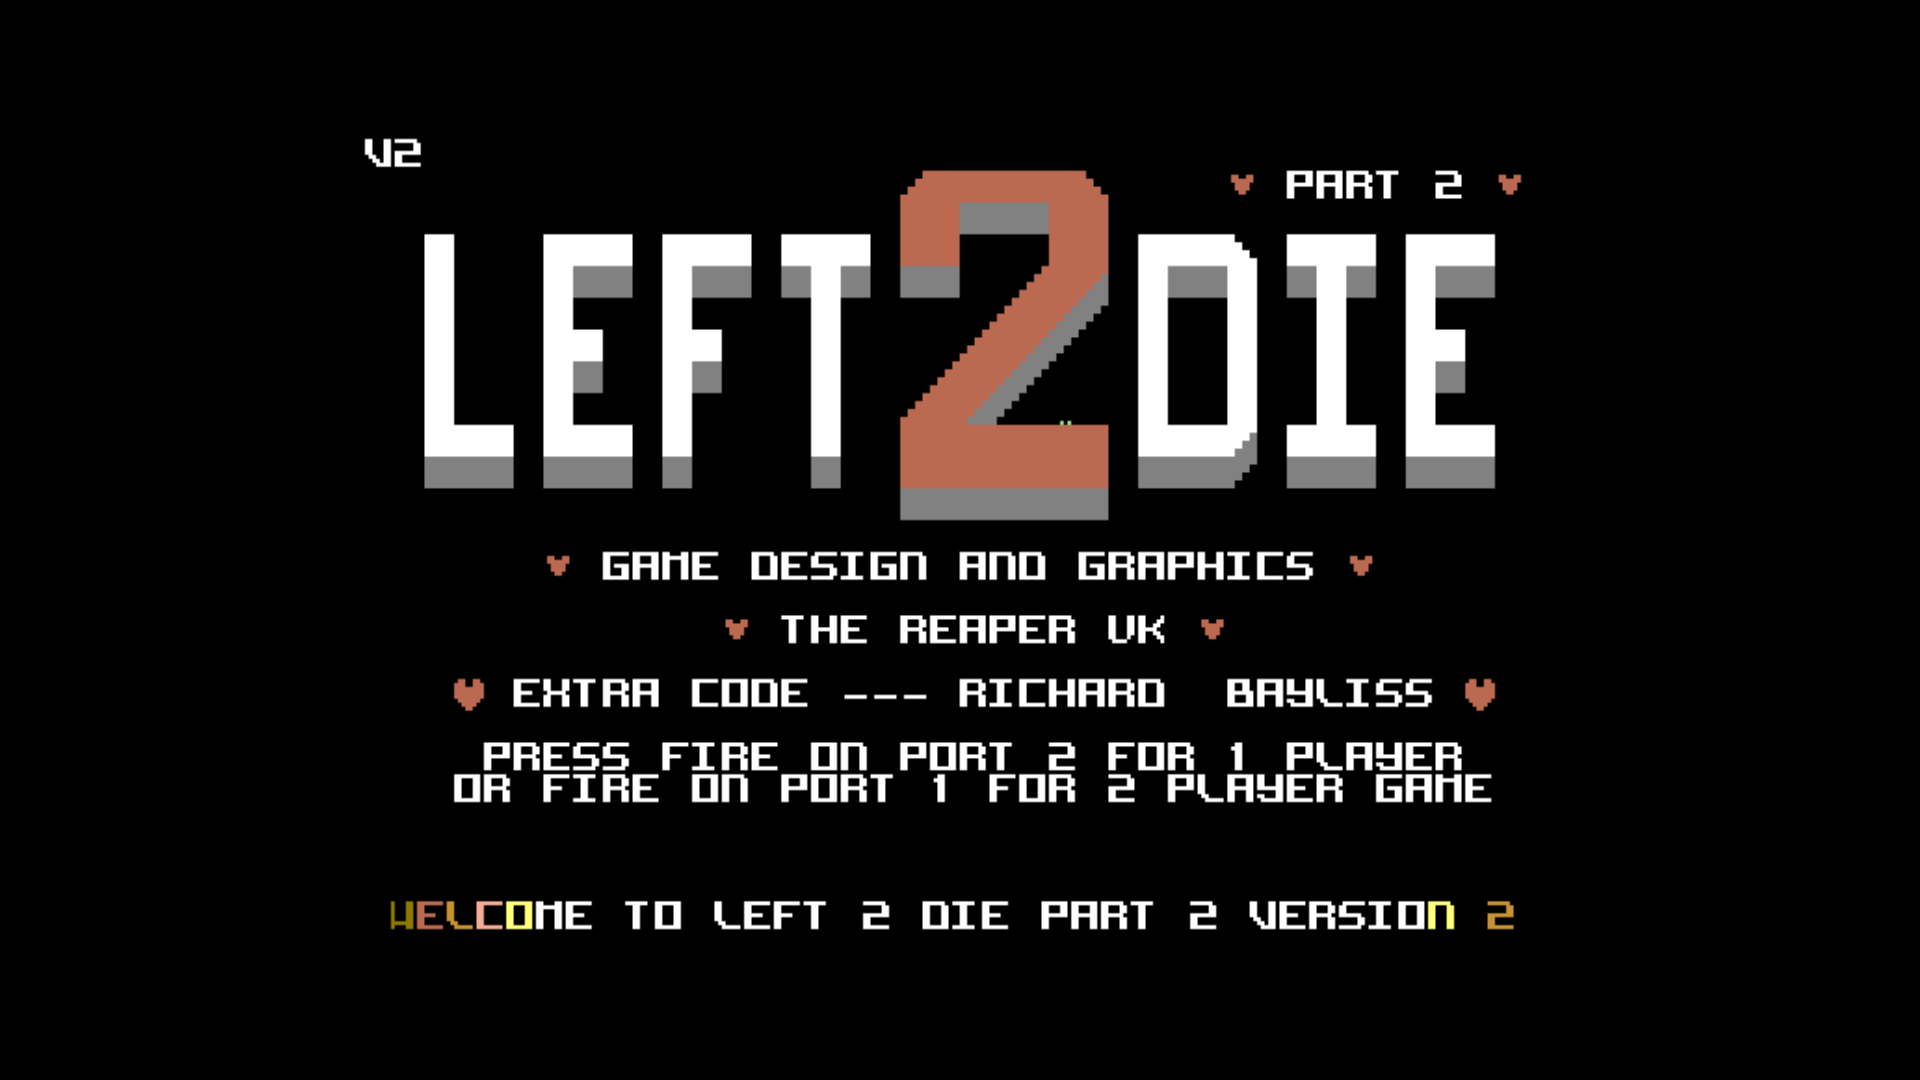 Left 2 Die Part 2 (C64)